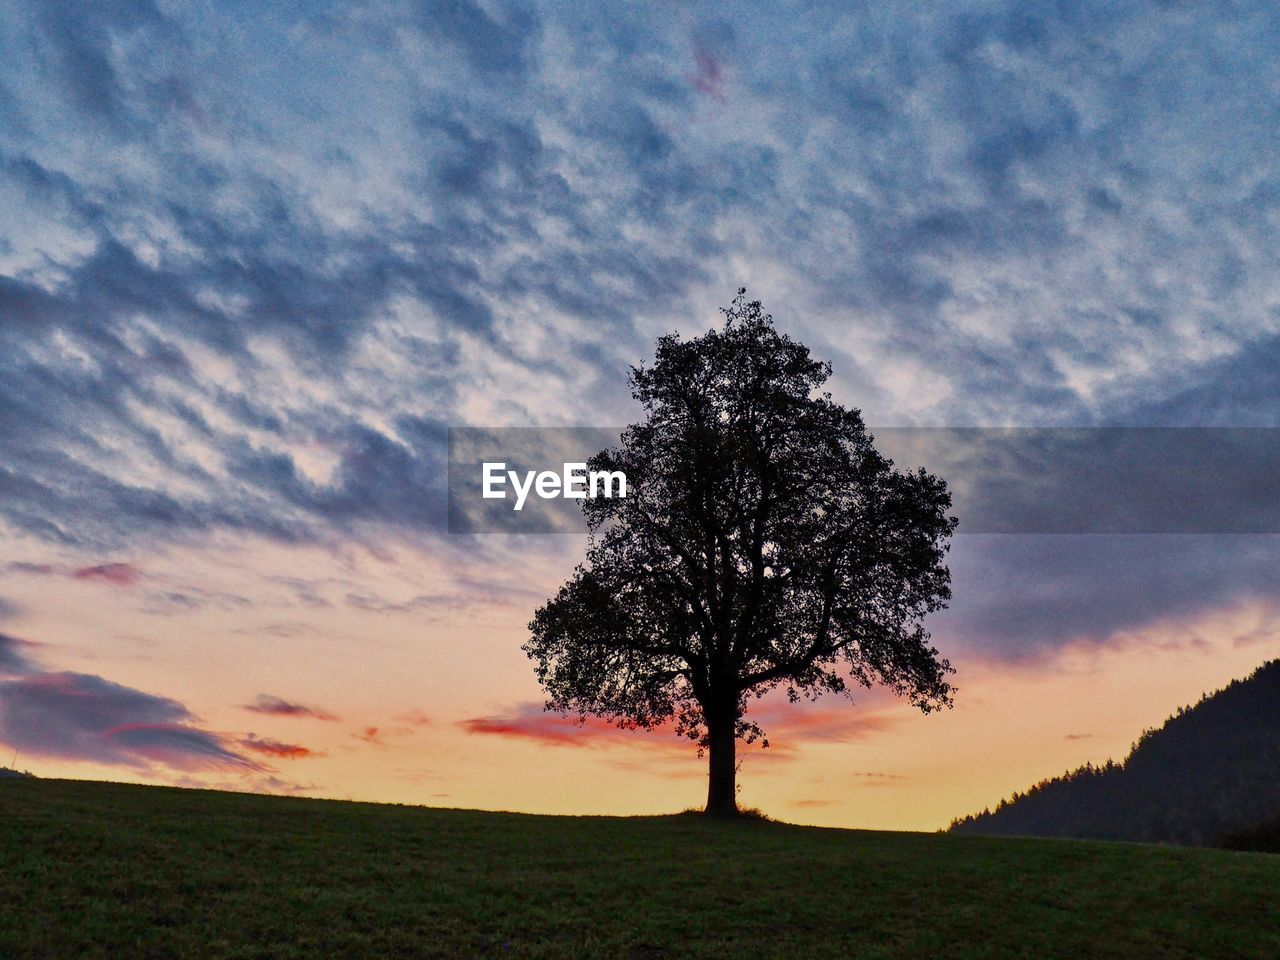 sky, cloud - sky, beauty in nature, tree, tranquil scene, tranquility, field, sunset, environment, scenics - nature, land, plant, landscape, nature, grass, no people, single tree, outdoors, horizon over land, idyllic, isolated